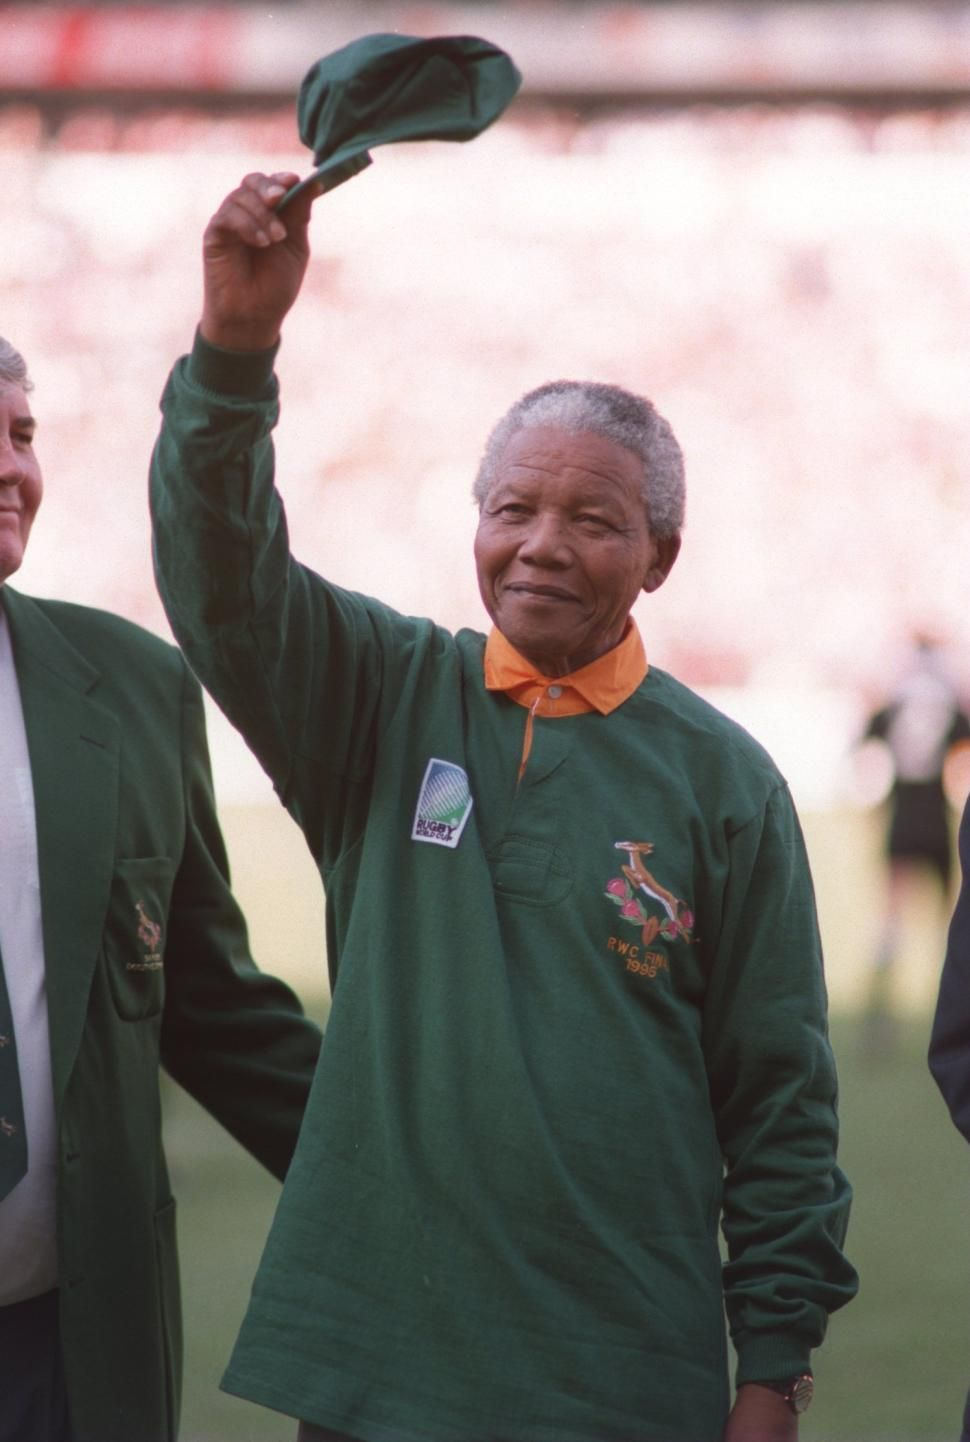 Nelson Mandela Used Sports To Unite Racially Divided South Africa Nelson Mandela Mandela South African Rugby